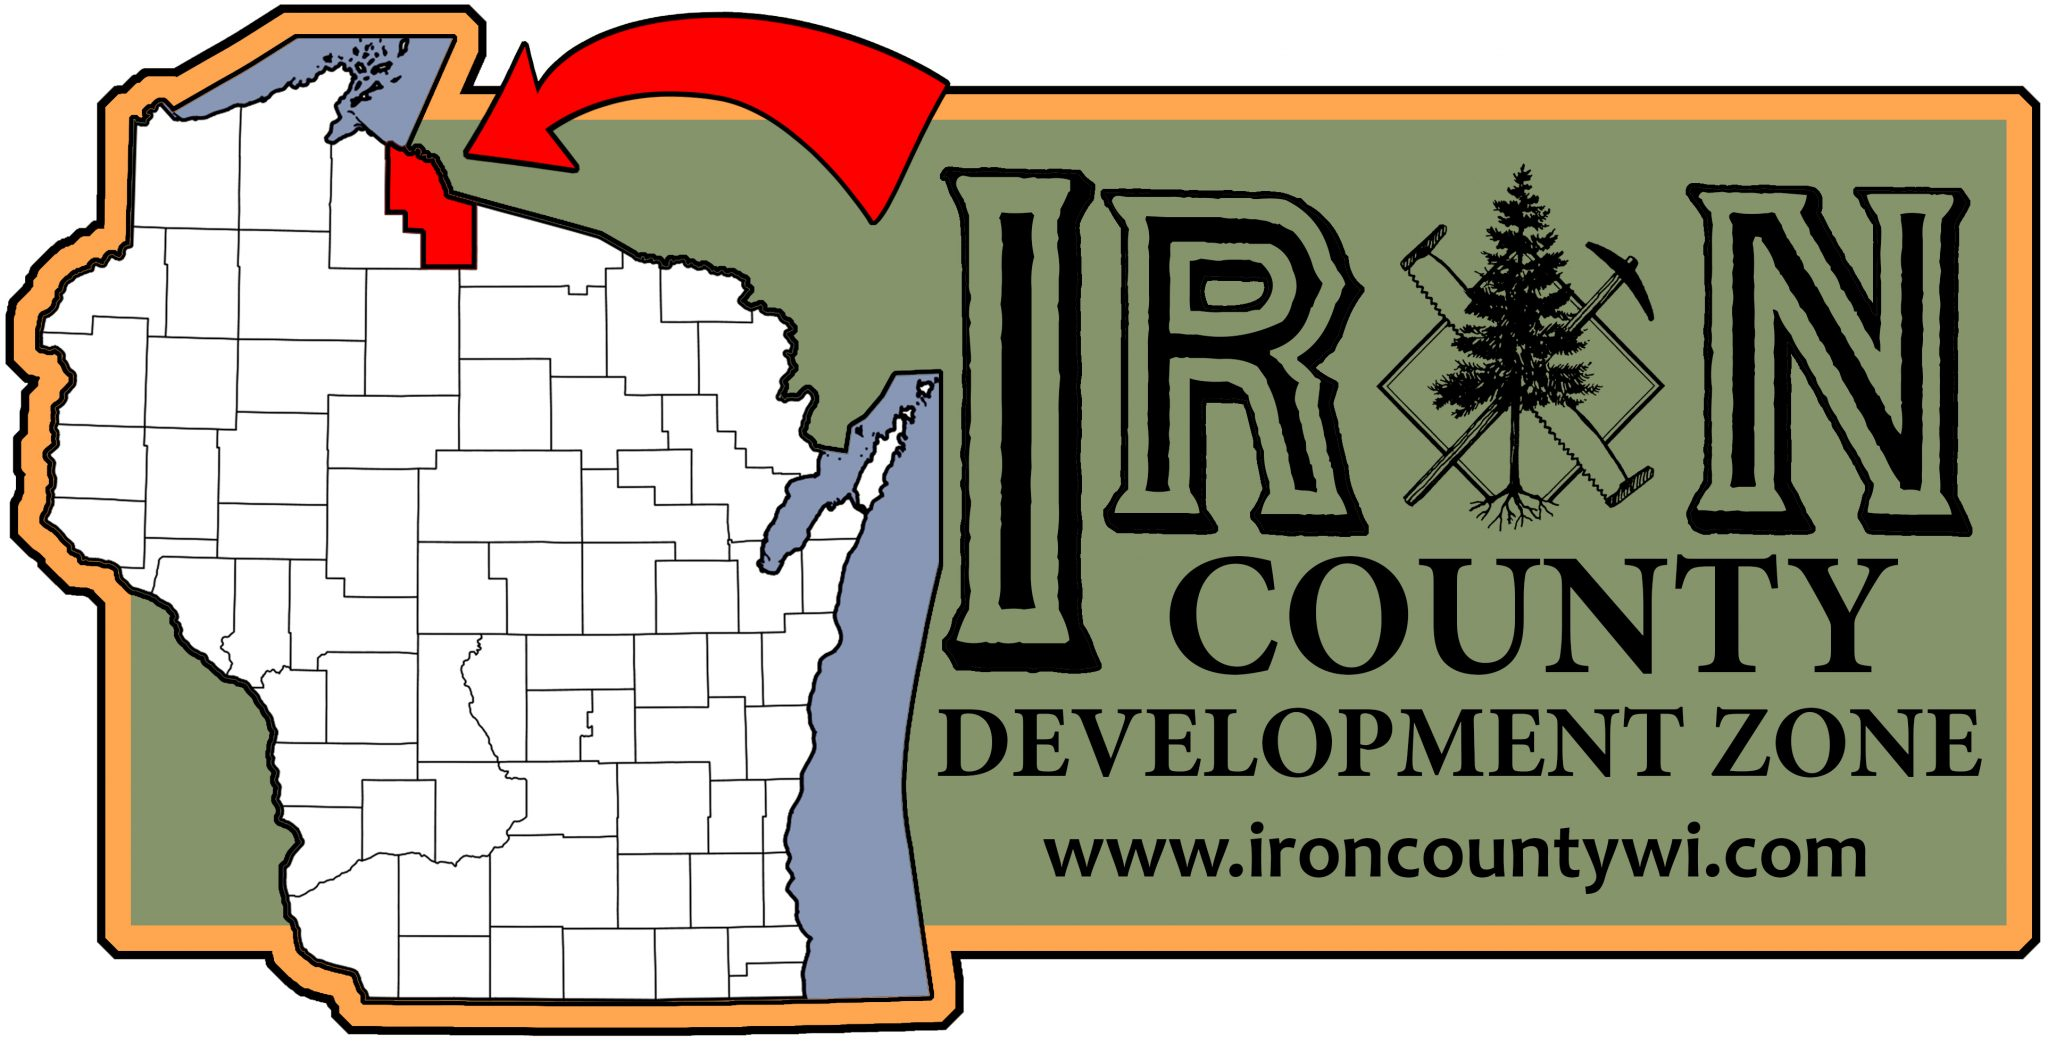 Iron County Development Zone